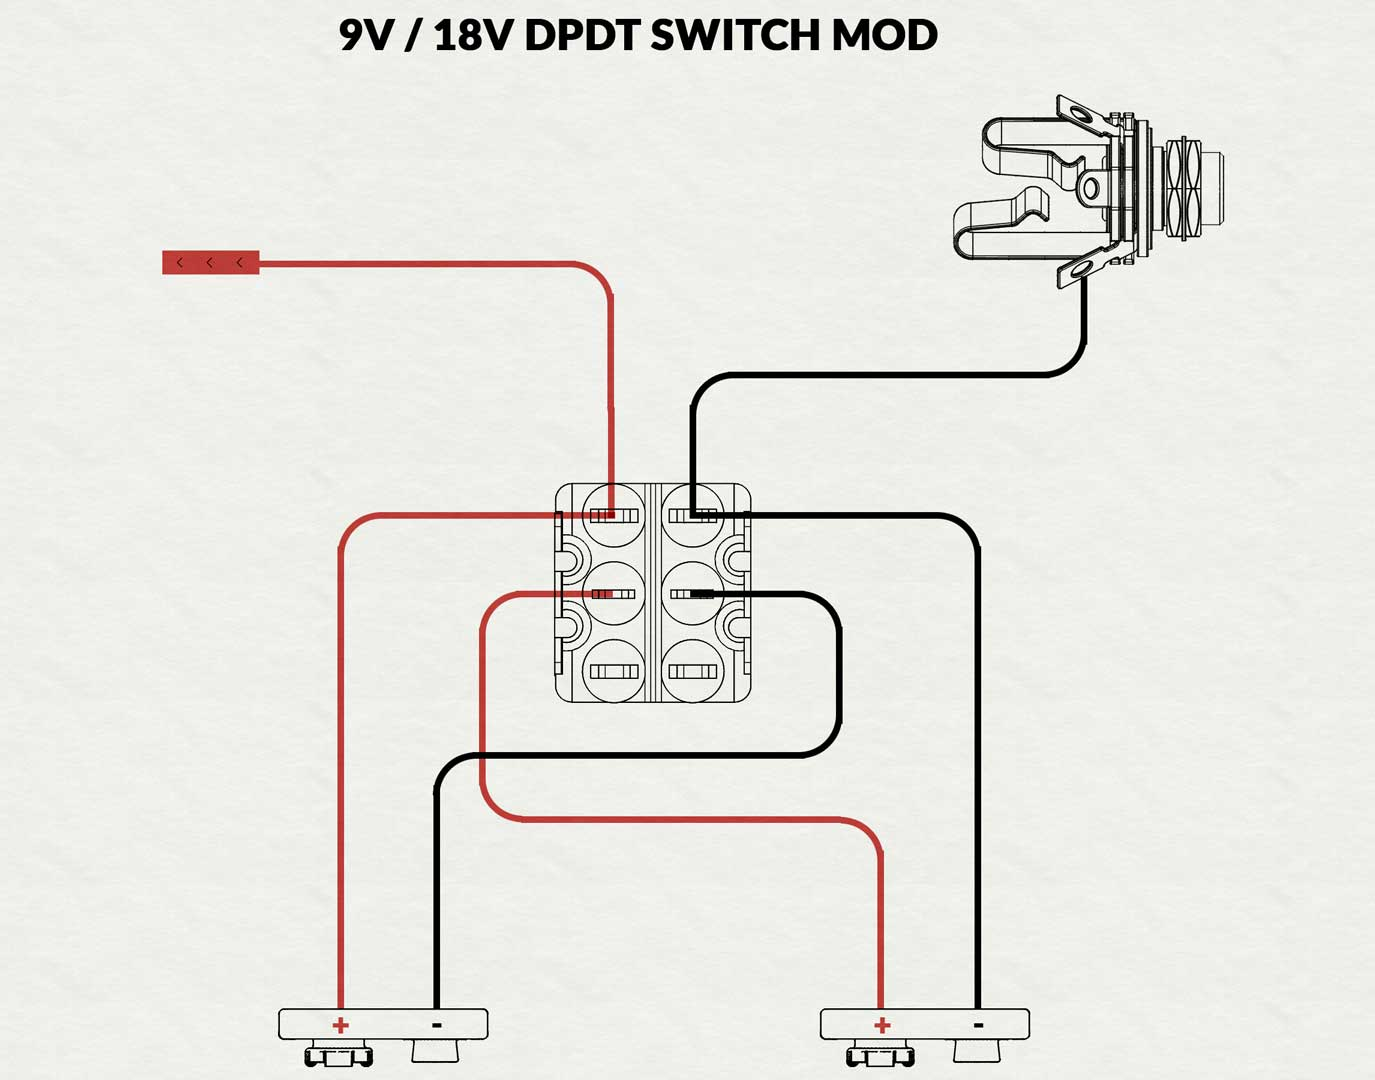 18v Battery Modification For Active Pickups Electric Herald Guild Guitar Wiring Diagram A Mod That Switches Between 9v And